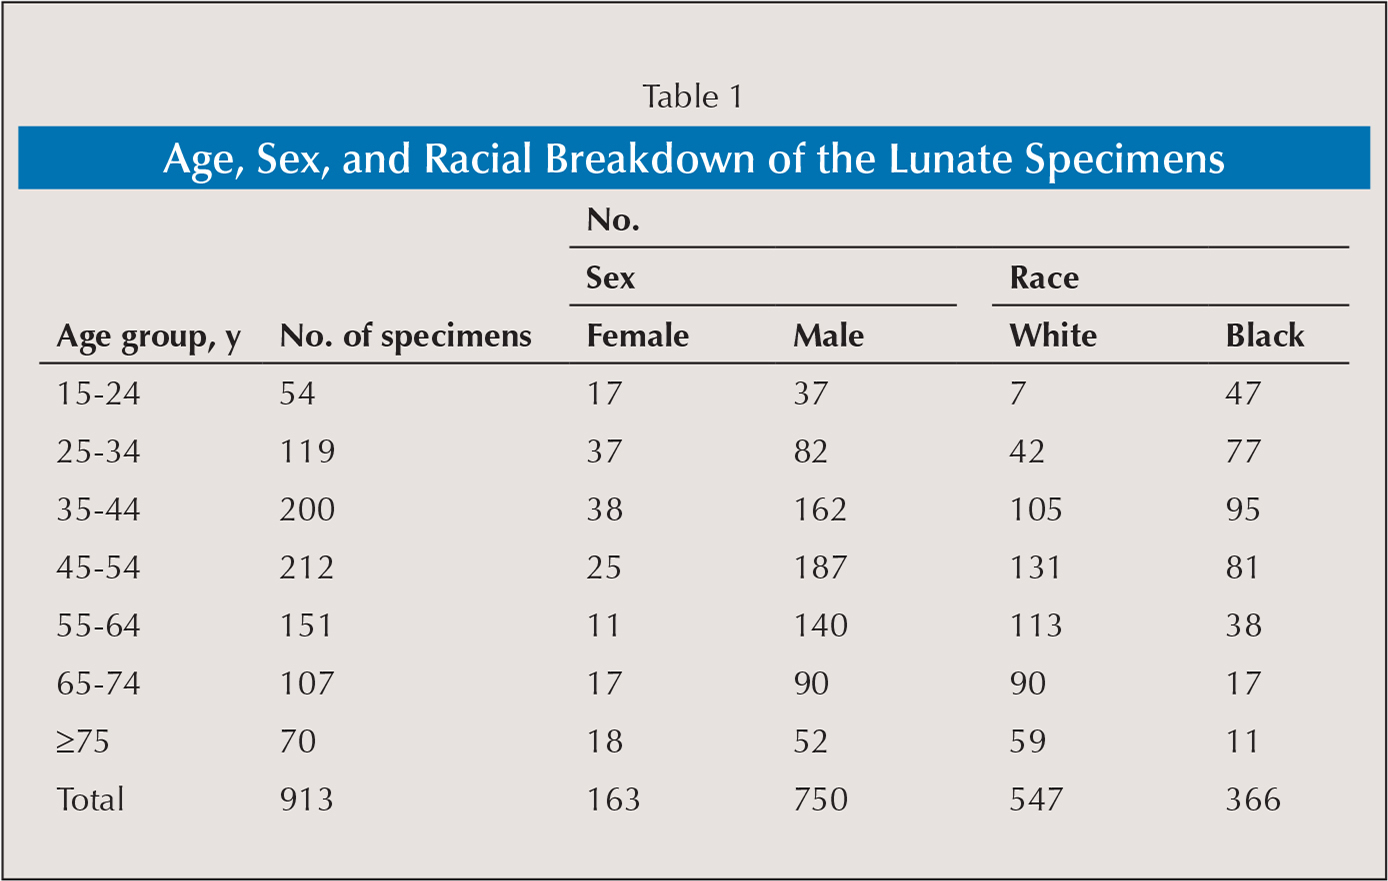 Age, Sex, and Racial Breakdown of the Lunate Specimens